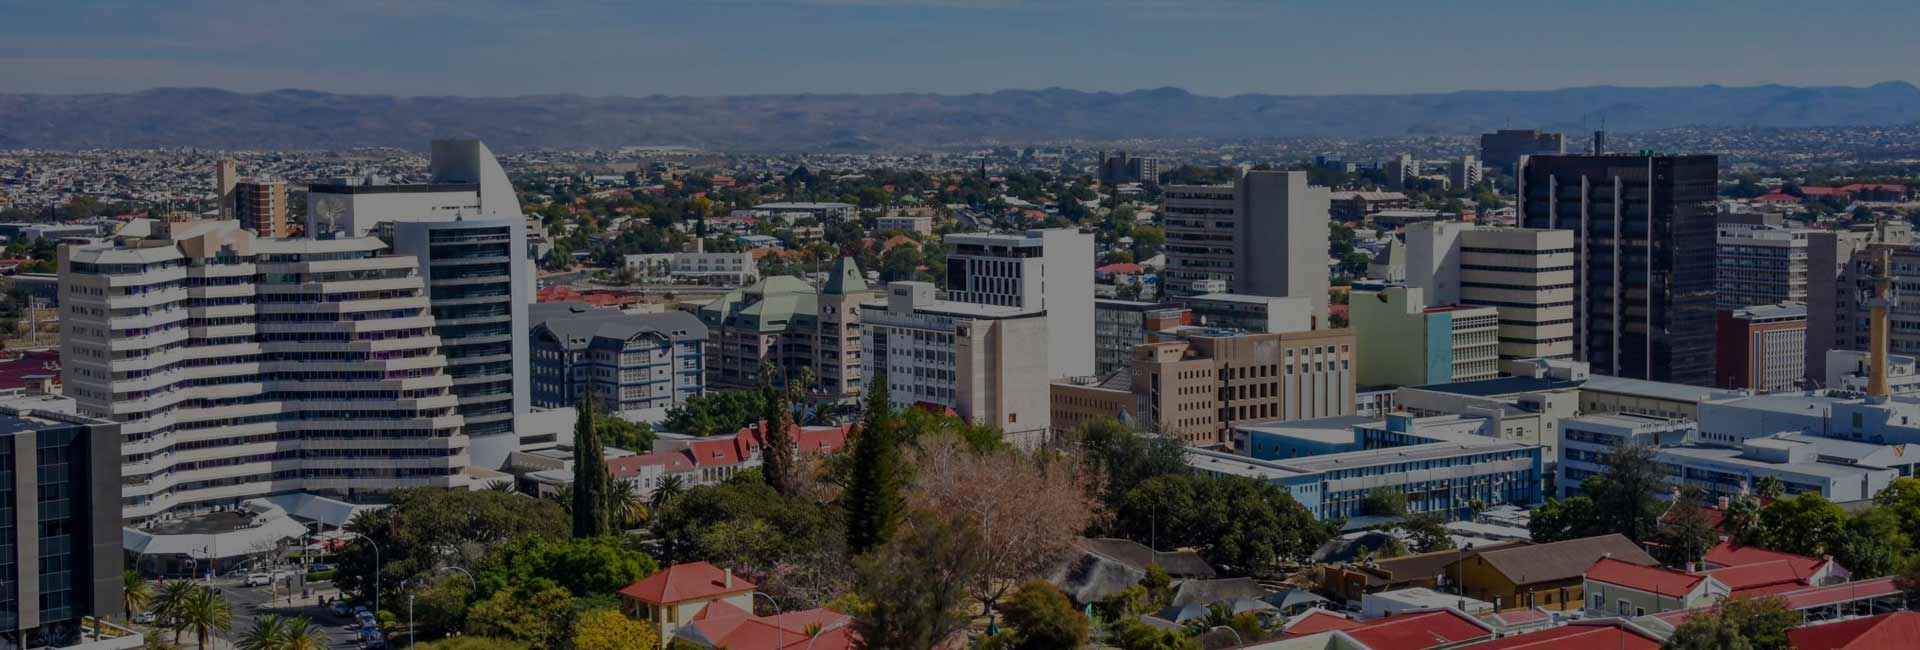 Windhoek City and Township Tour